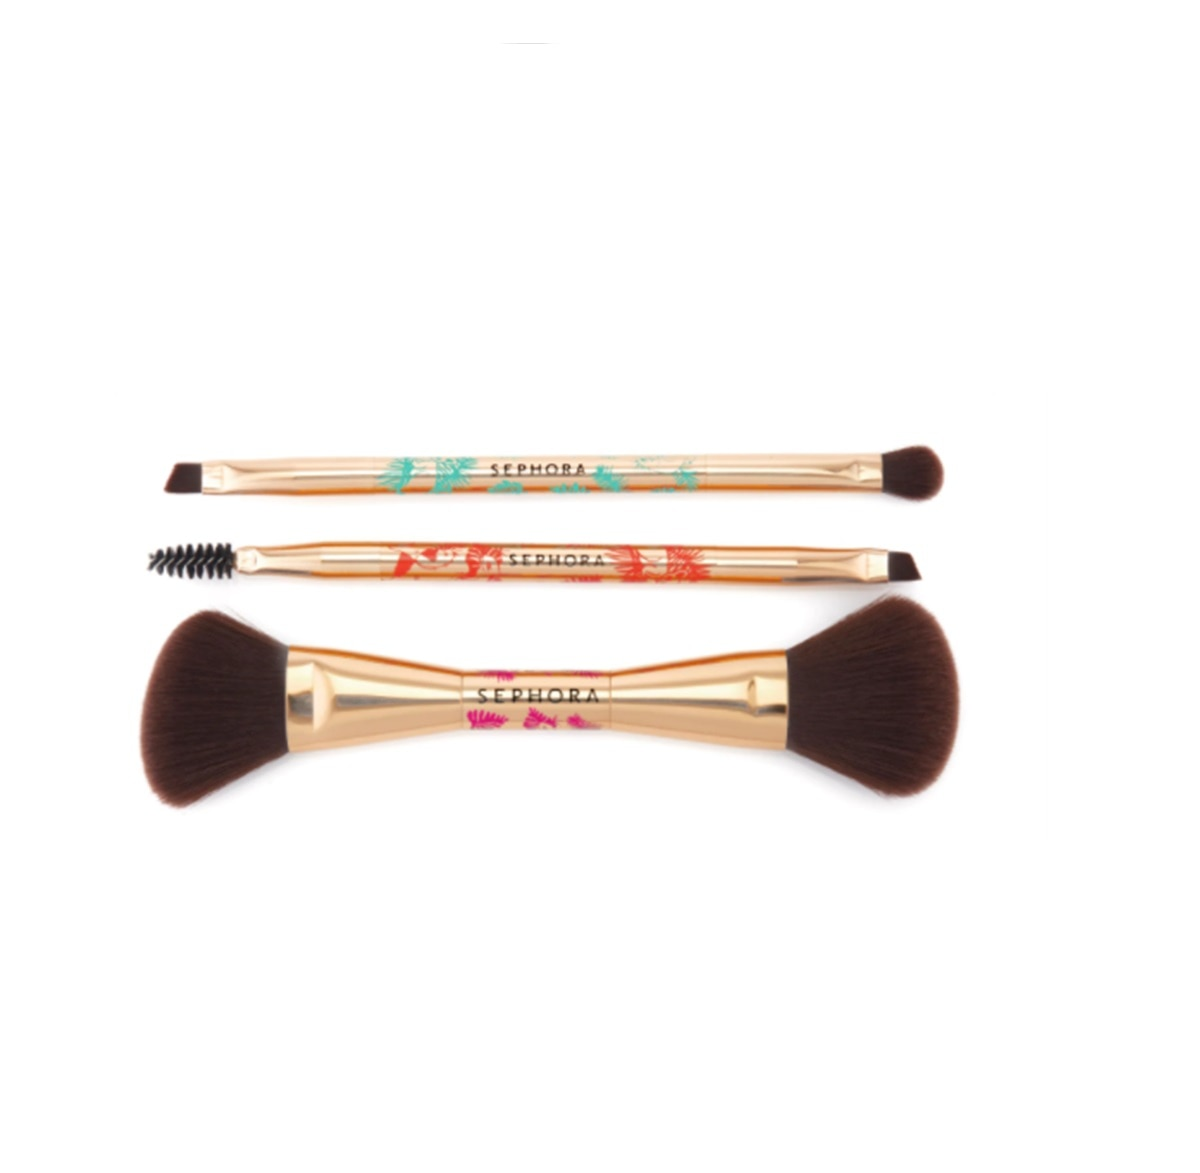 3 DOUBLE ENDED BRUSH SET-20 XMS